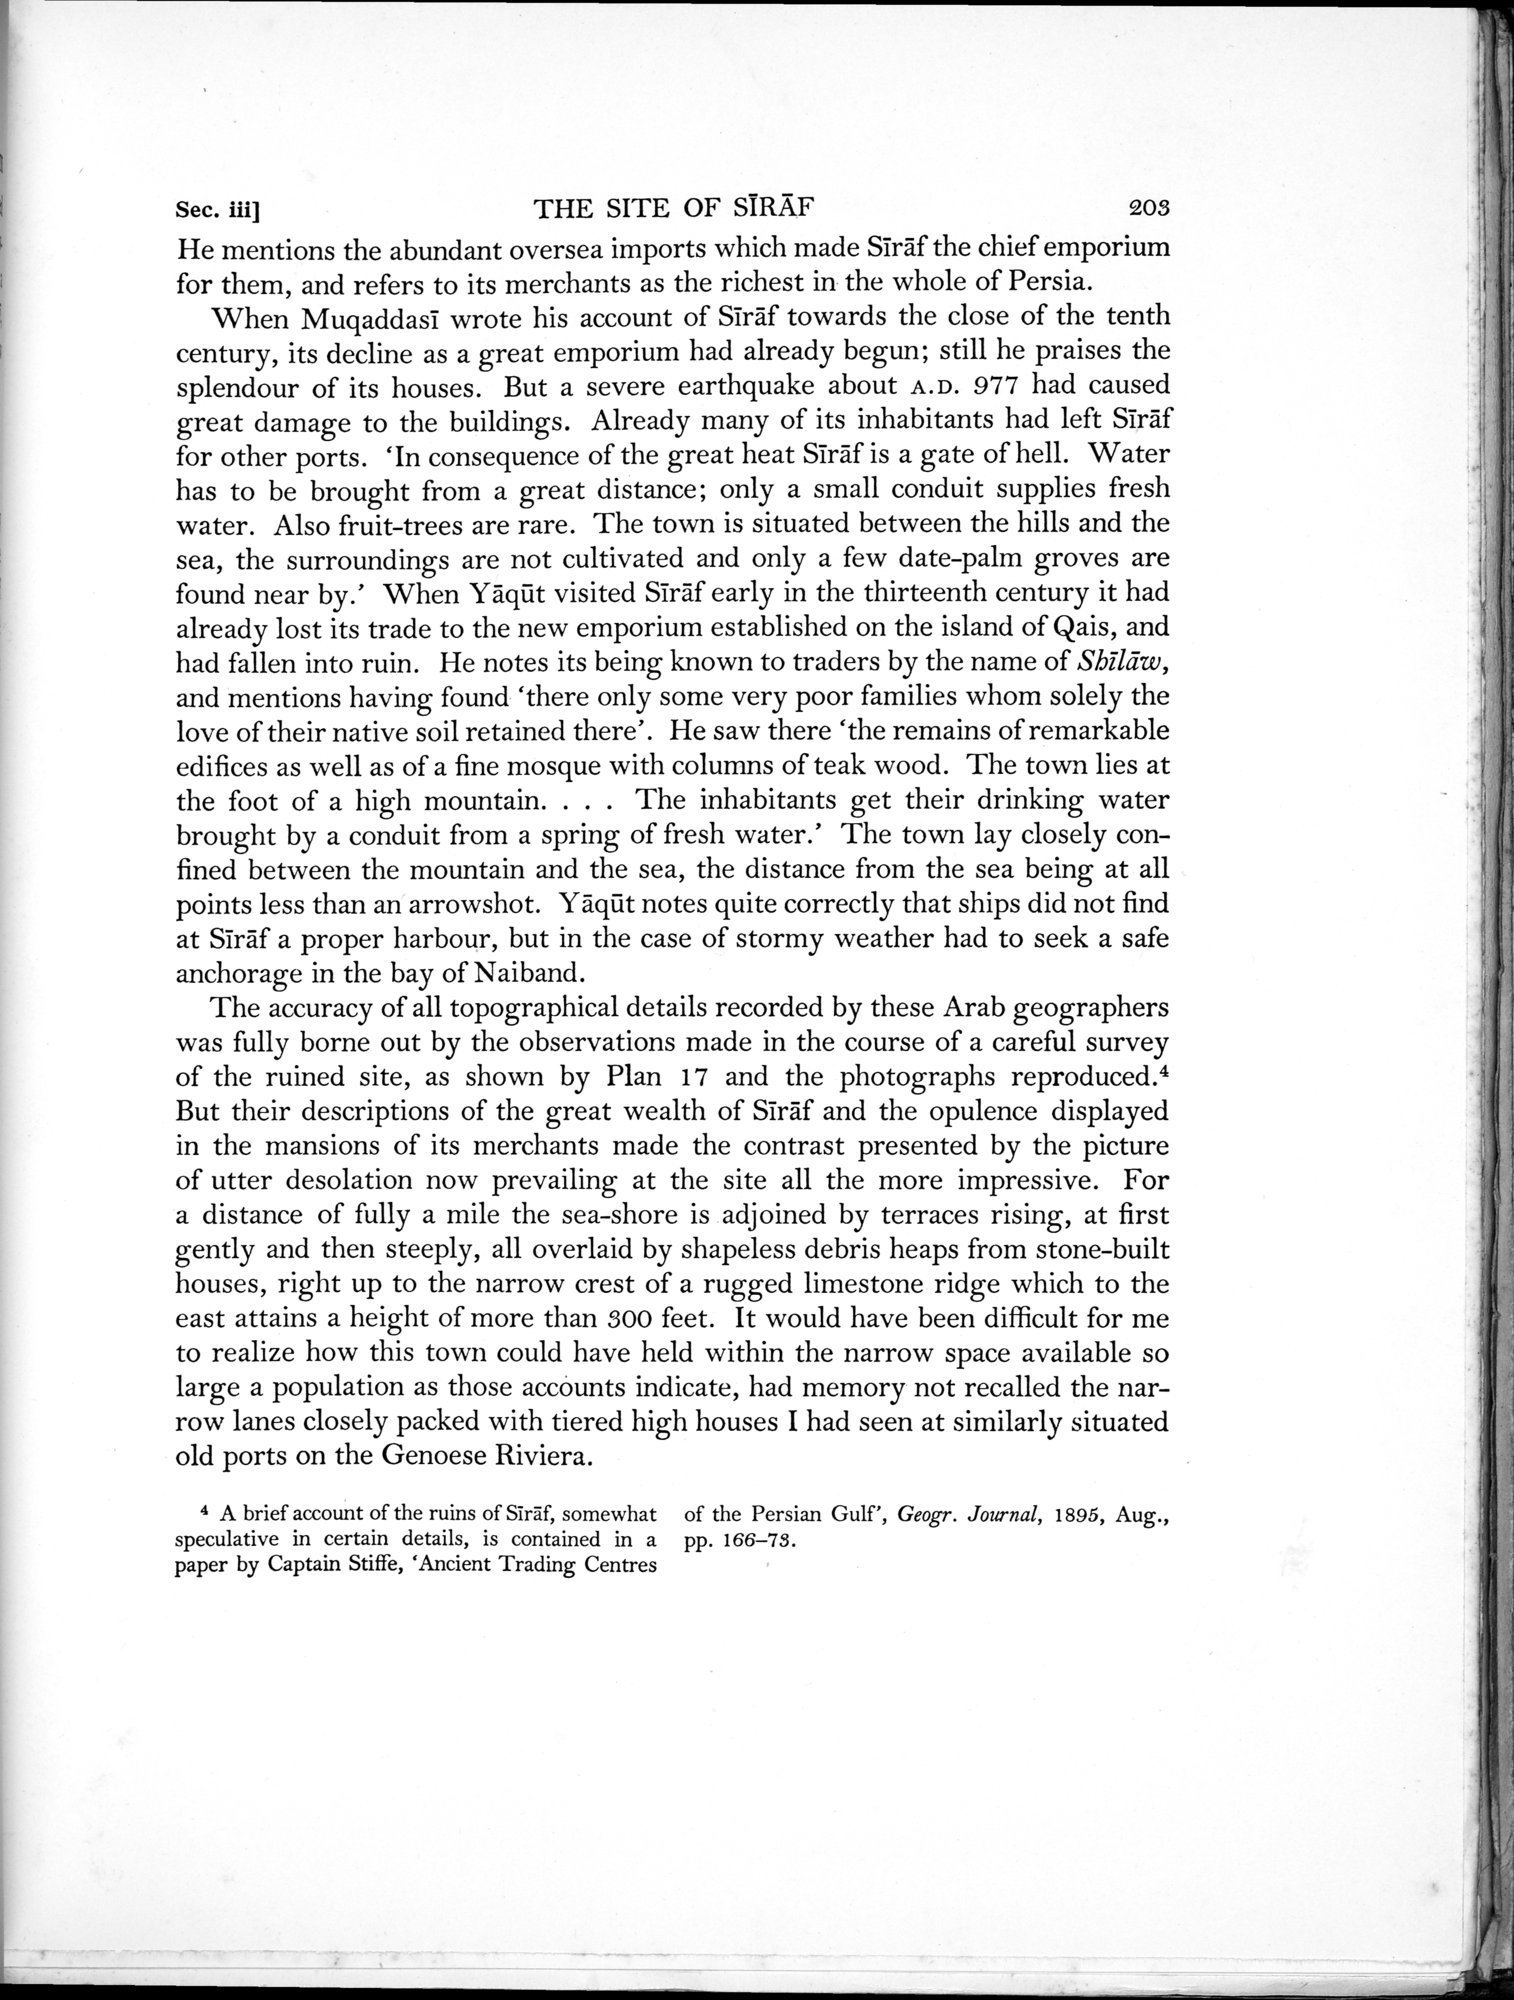 Archaeological Reconnaissances in North-Western India and South-Eastern Īrān : vol.1 / Page 271 (Grayscale High Resolution Image)